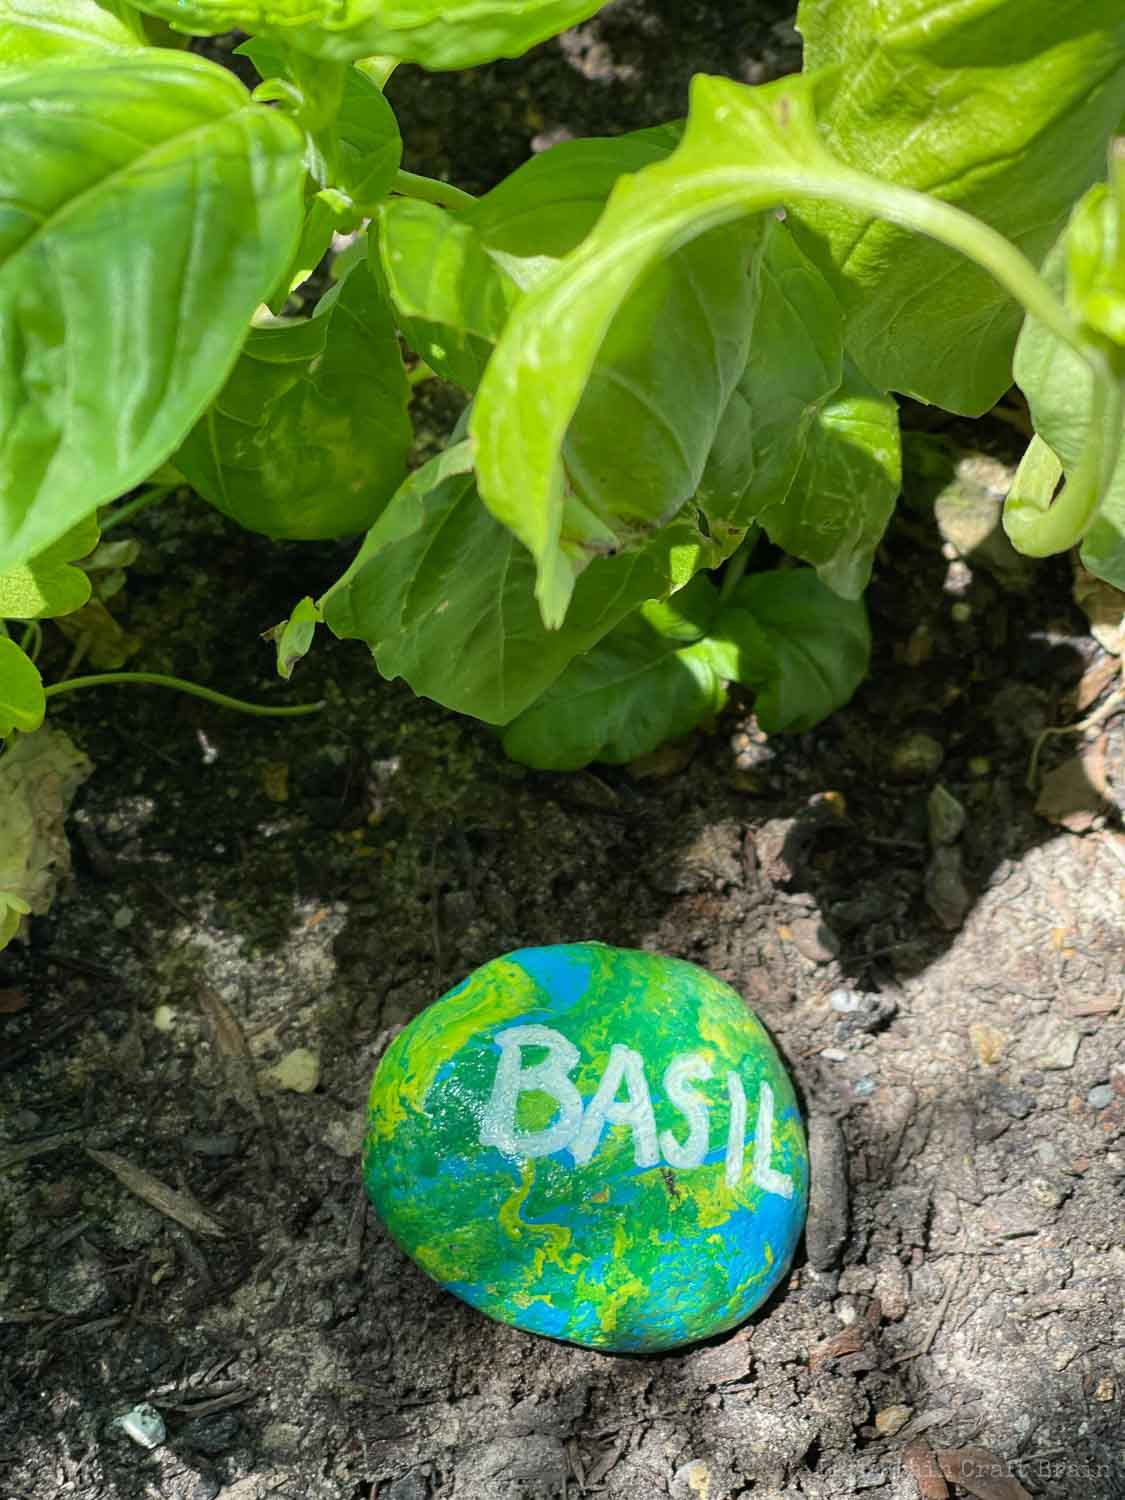 green and blue and yellow painted rock in soil basil pour painted rock garden markers